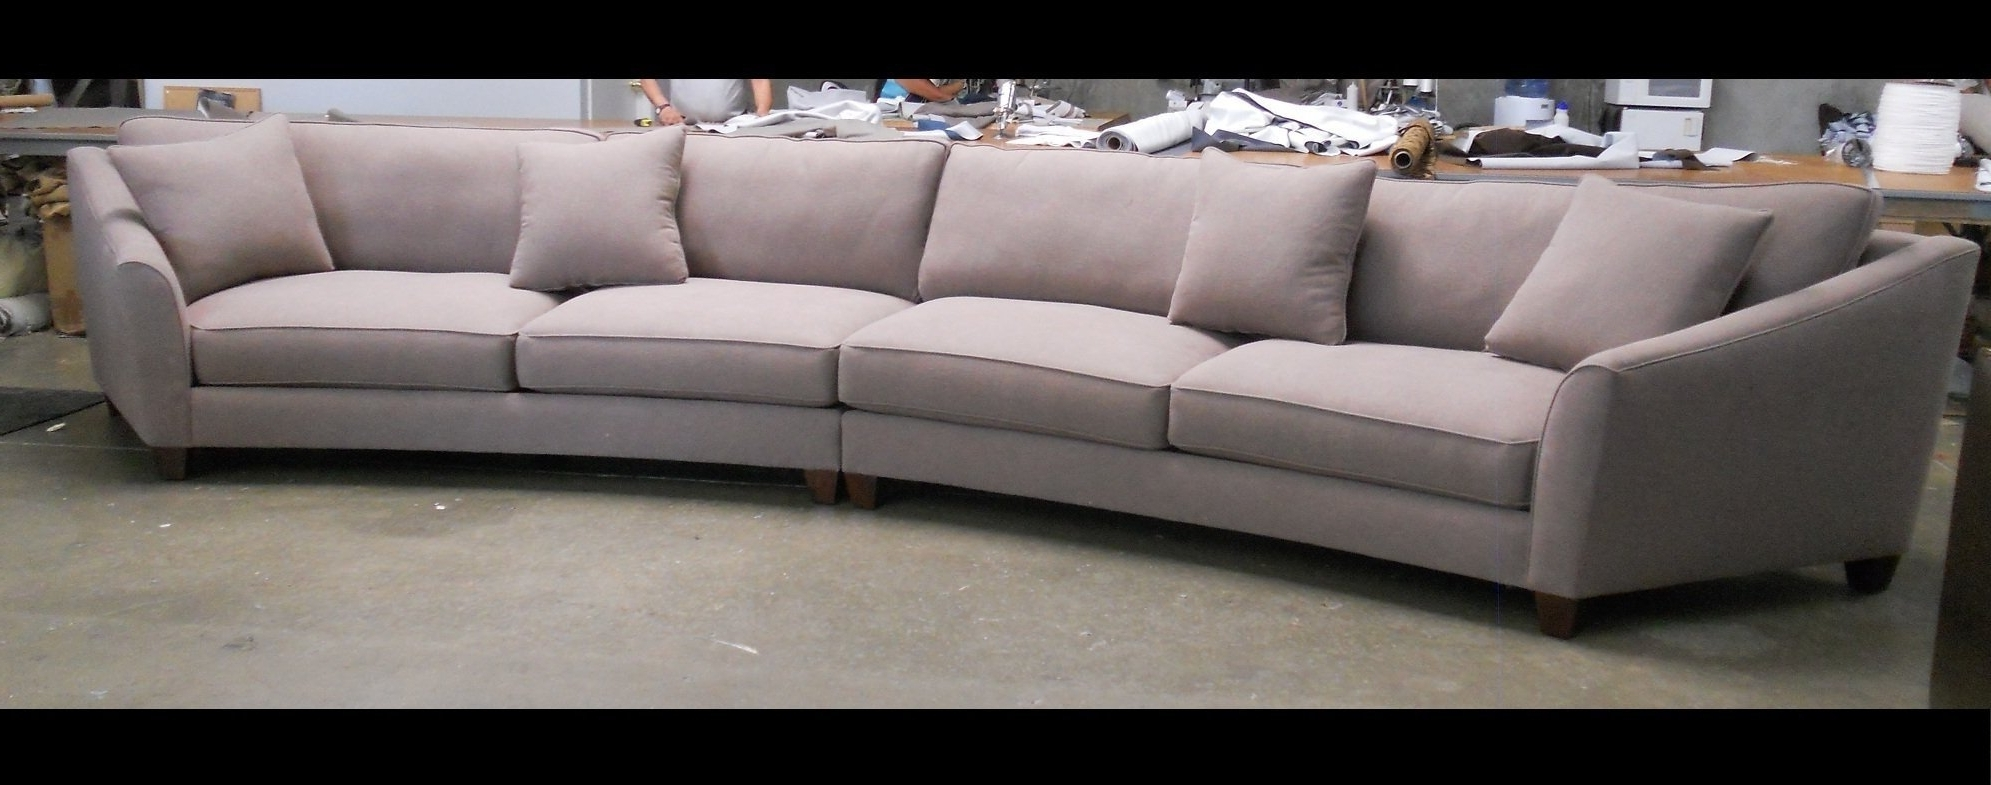 Curved Recliner Sofas For Most Up To Date Fancy Reclining Sofa 58 And Couches